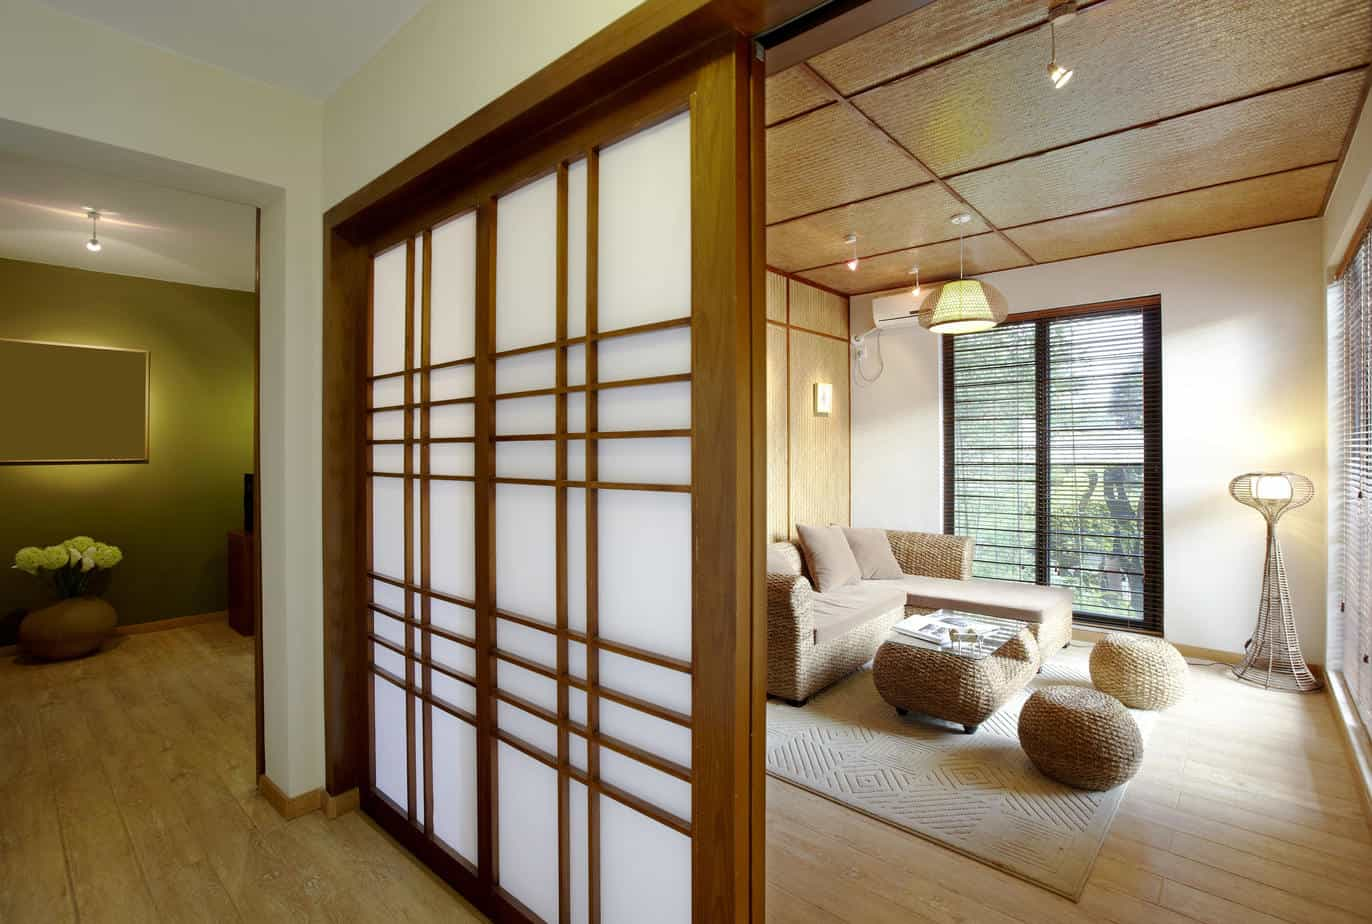 Japanese Inspired Home Decor Asian Influence On California Home Décor Aero Shade